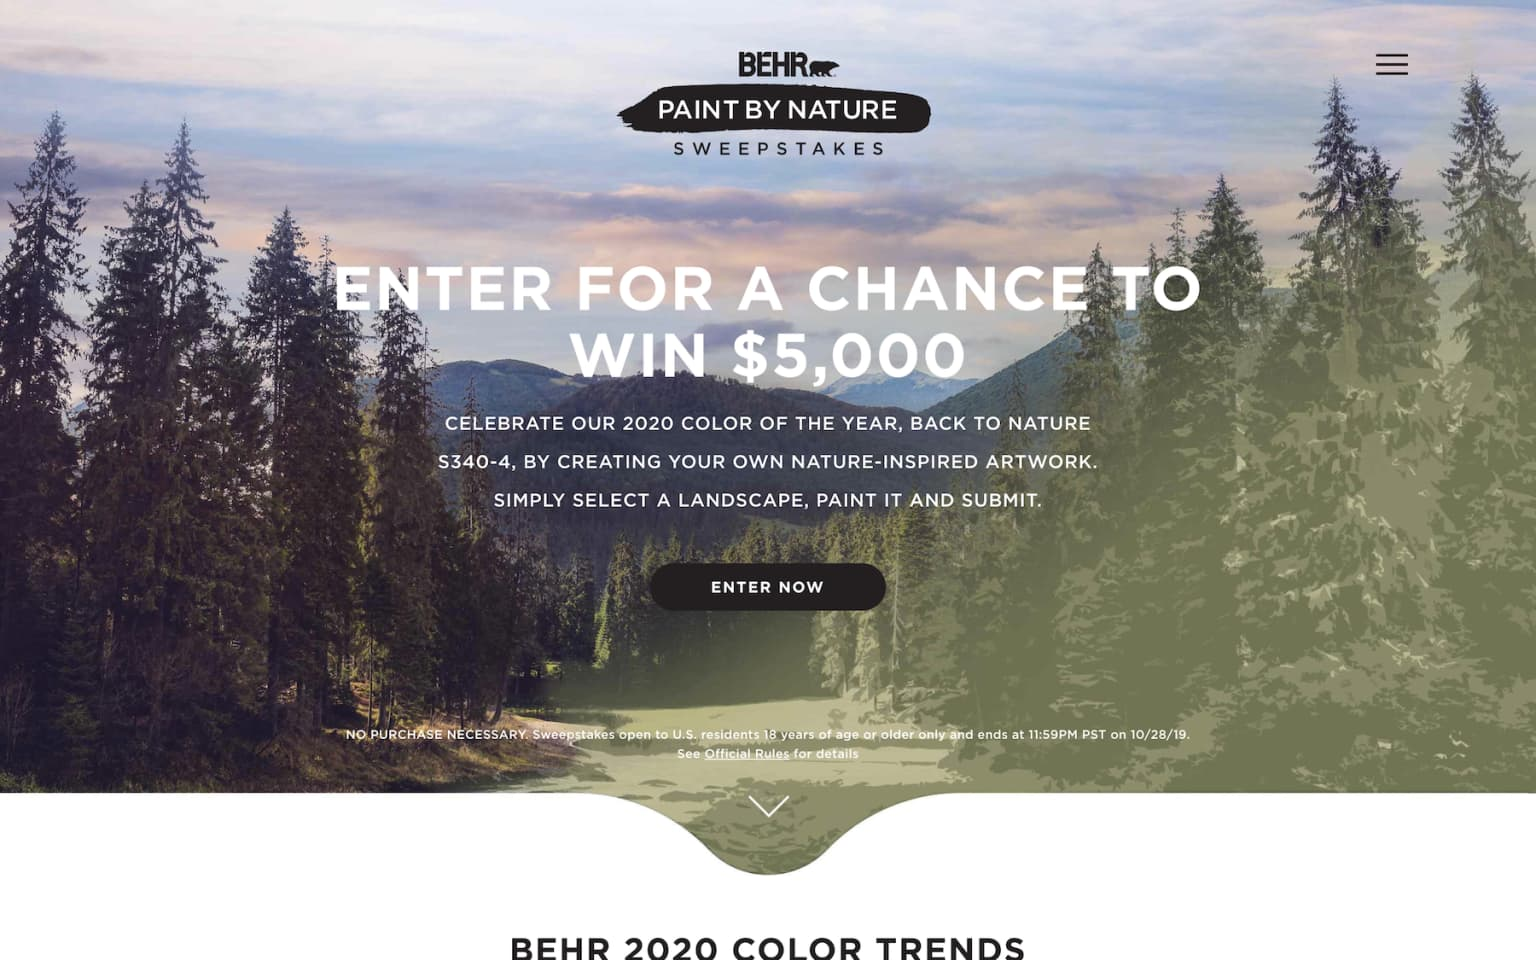 Behr Paint By Nature